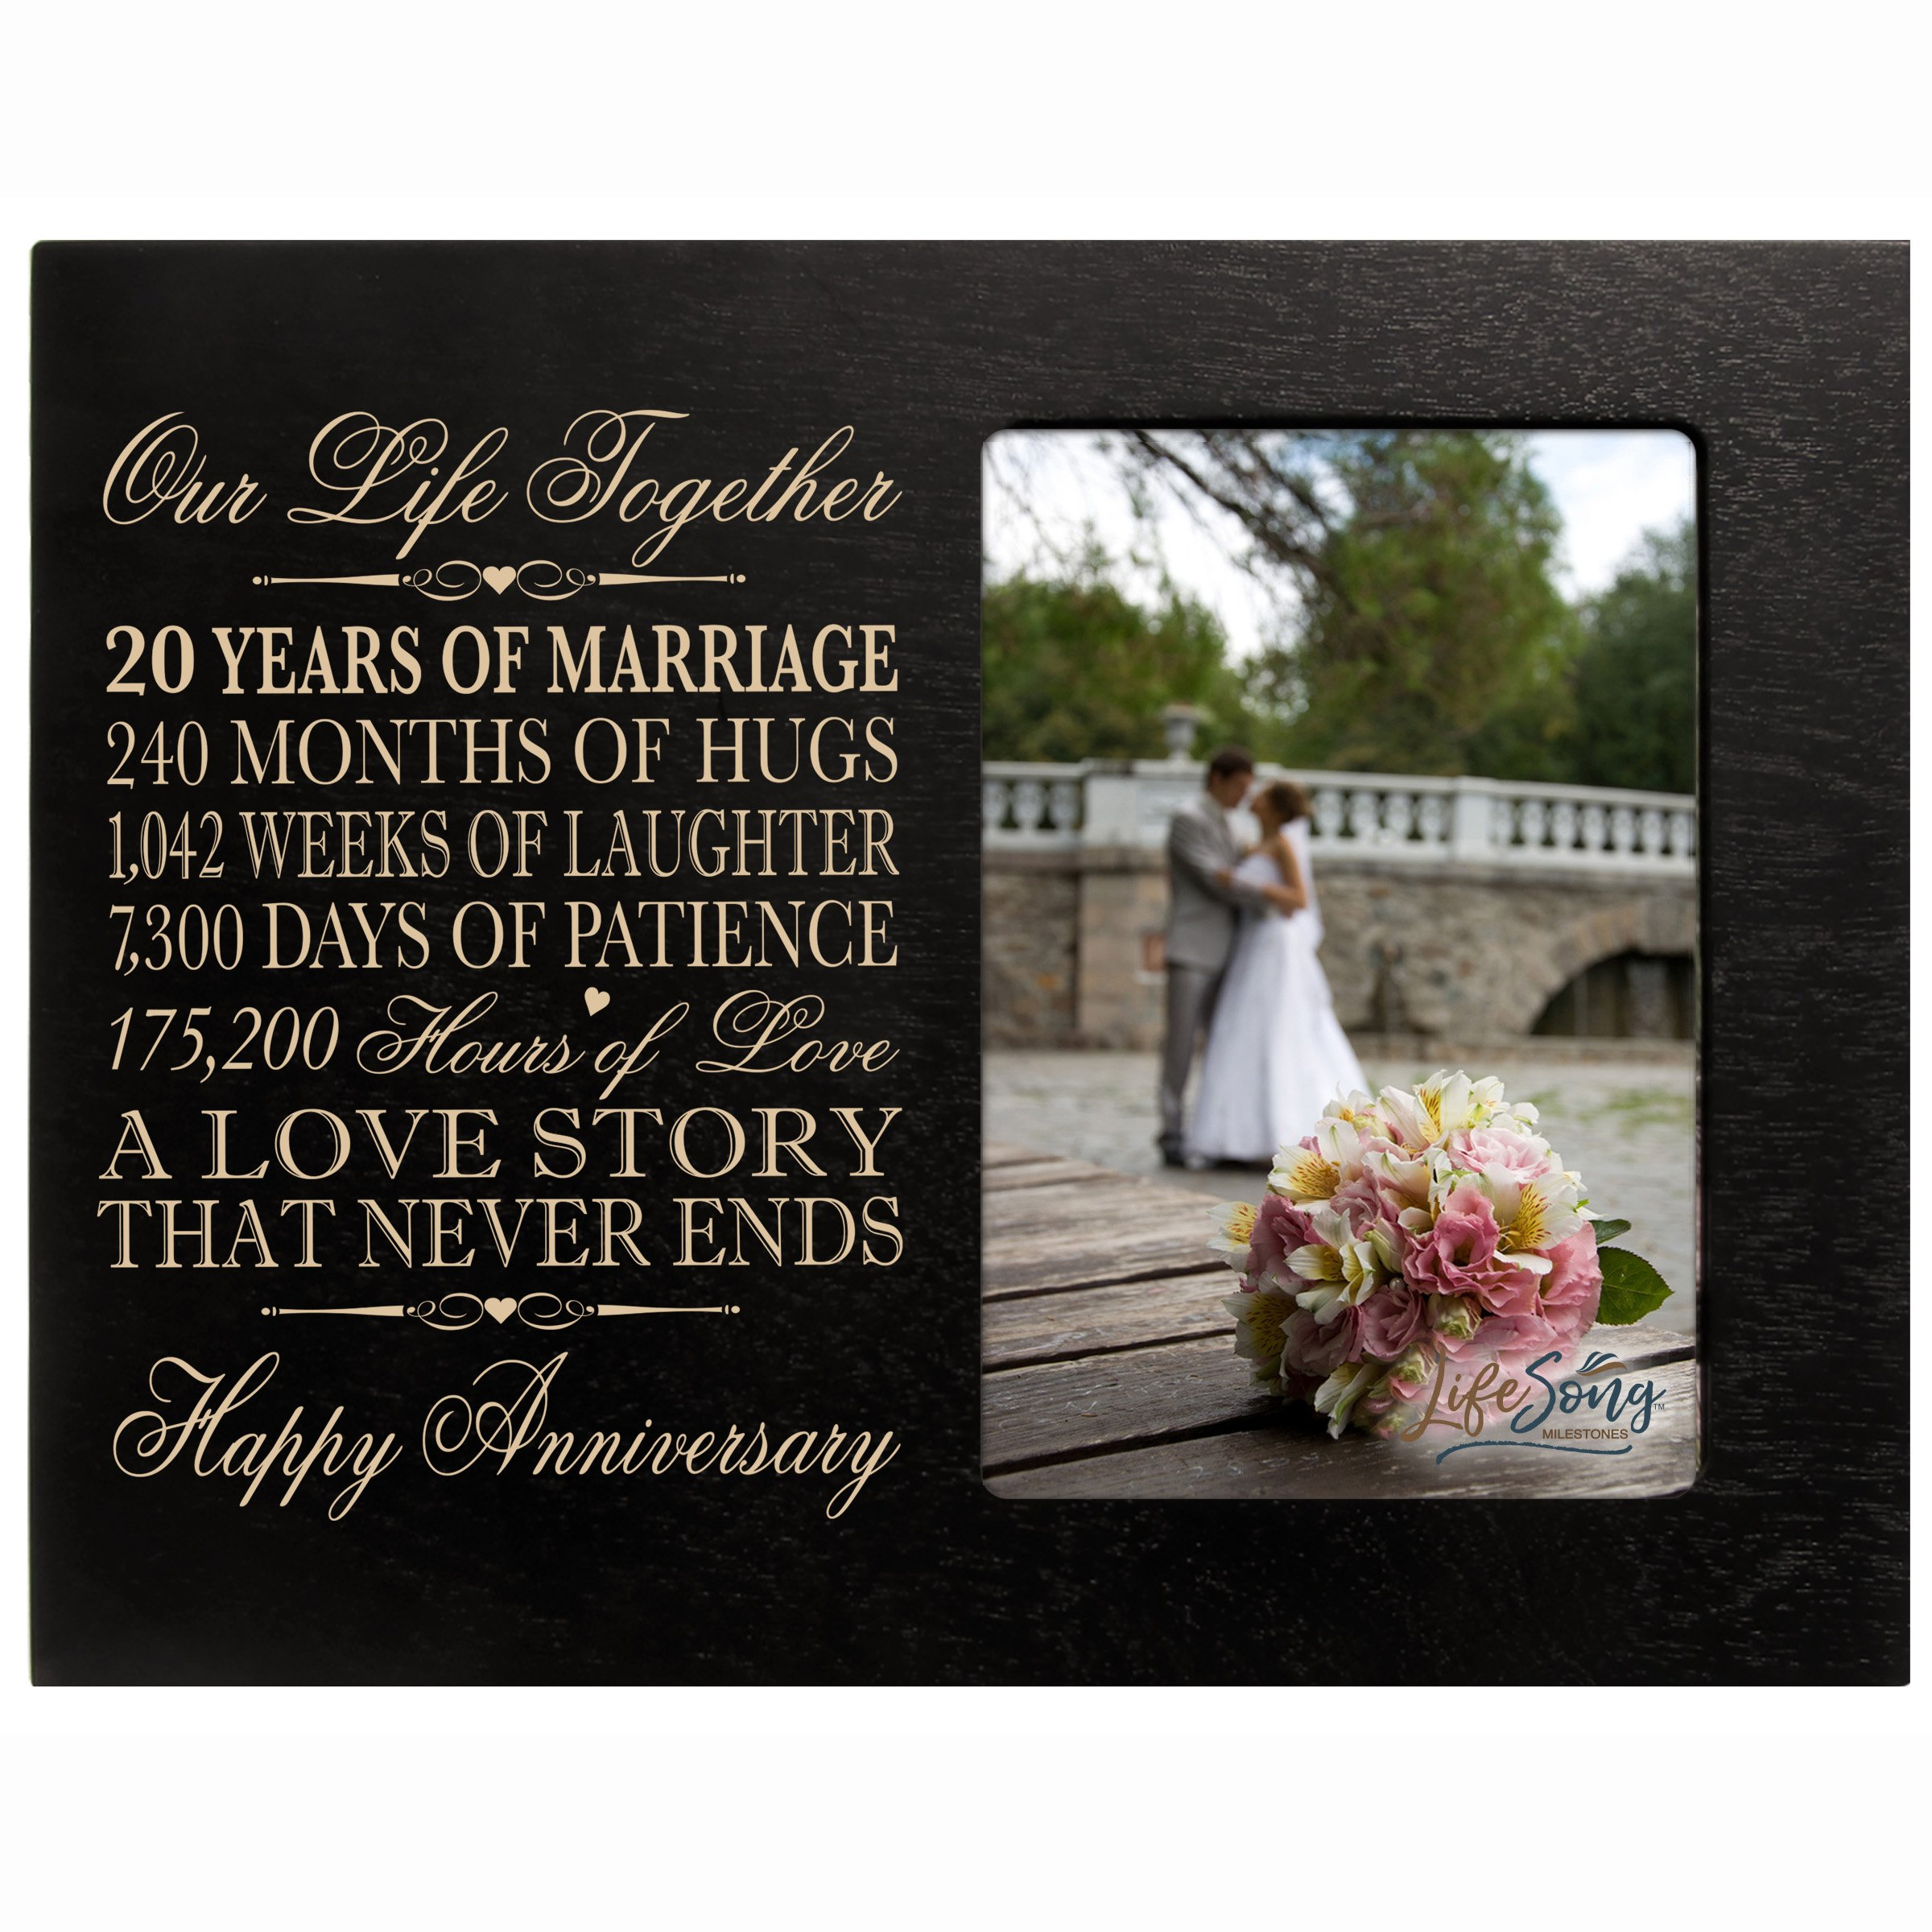 LifeSong Milestones Twenty Year for her him Couple Custom Engraved 20th Year Wedding Anniversary Celebration Gift Frame Holds 4x6 Photo Frame Size 10'' w x 8'' h x 1/2'' (Black) by LifeSong Milestones